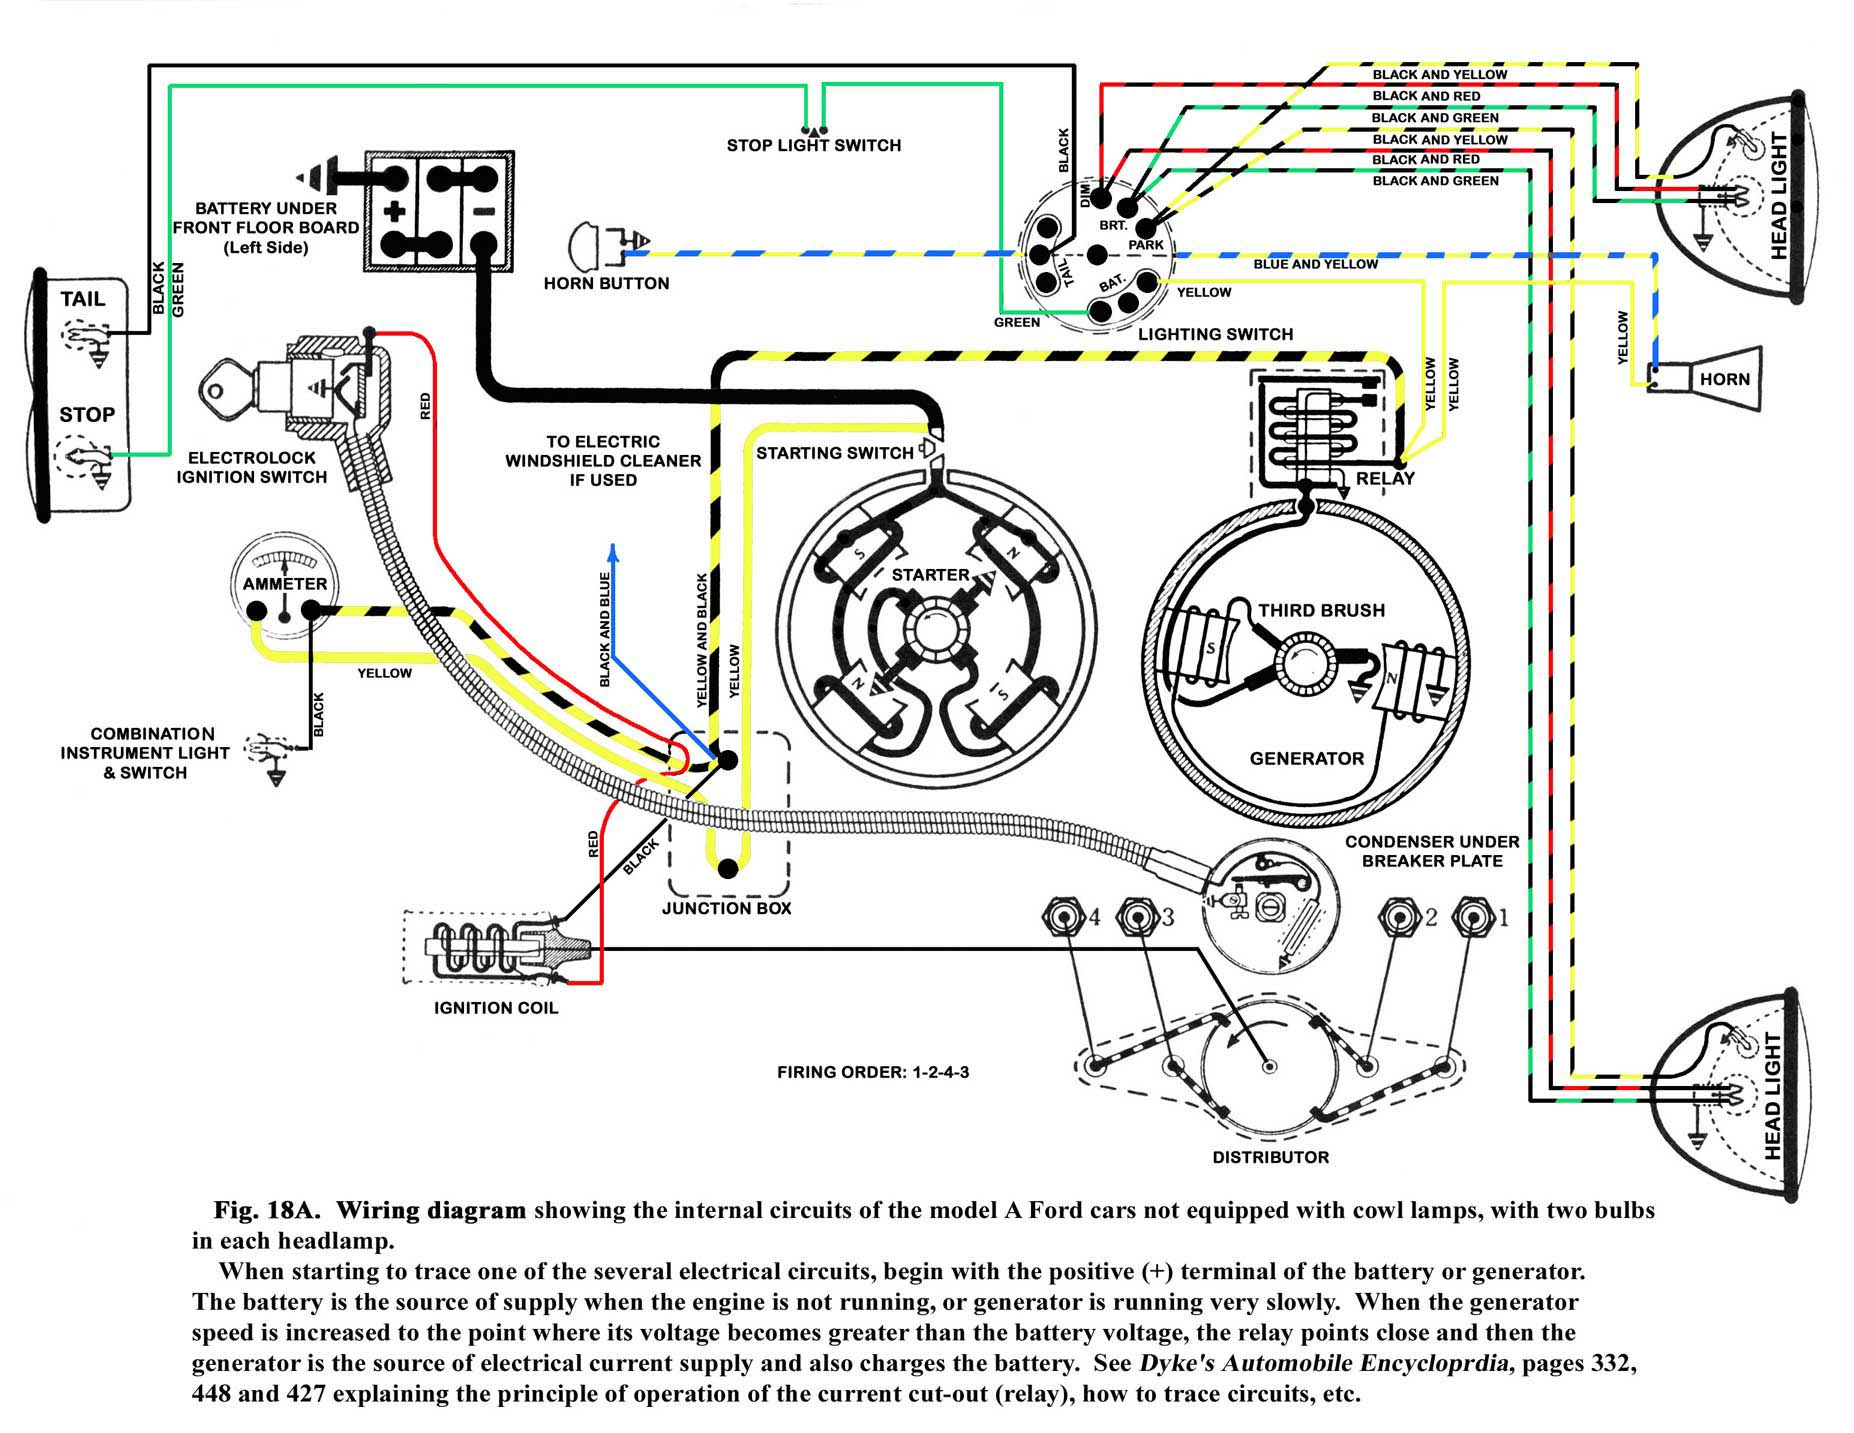 Dodge Pickup Tail Light Wiring Harness Manual Of Diagram 2006 Ram Model A Restorers Club Coil Tester 2007 2008